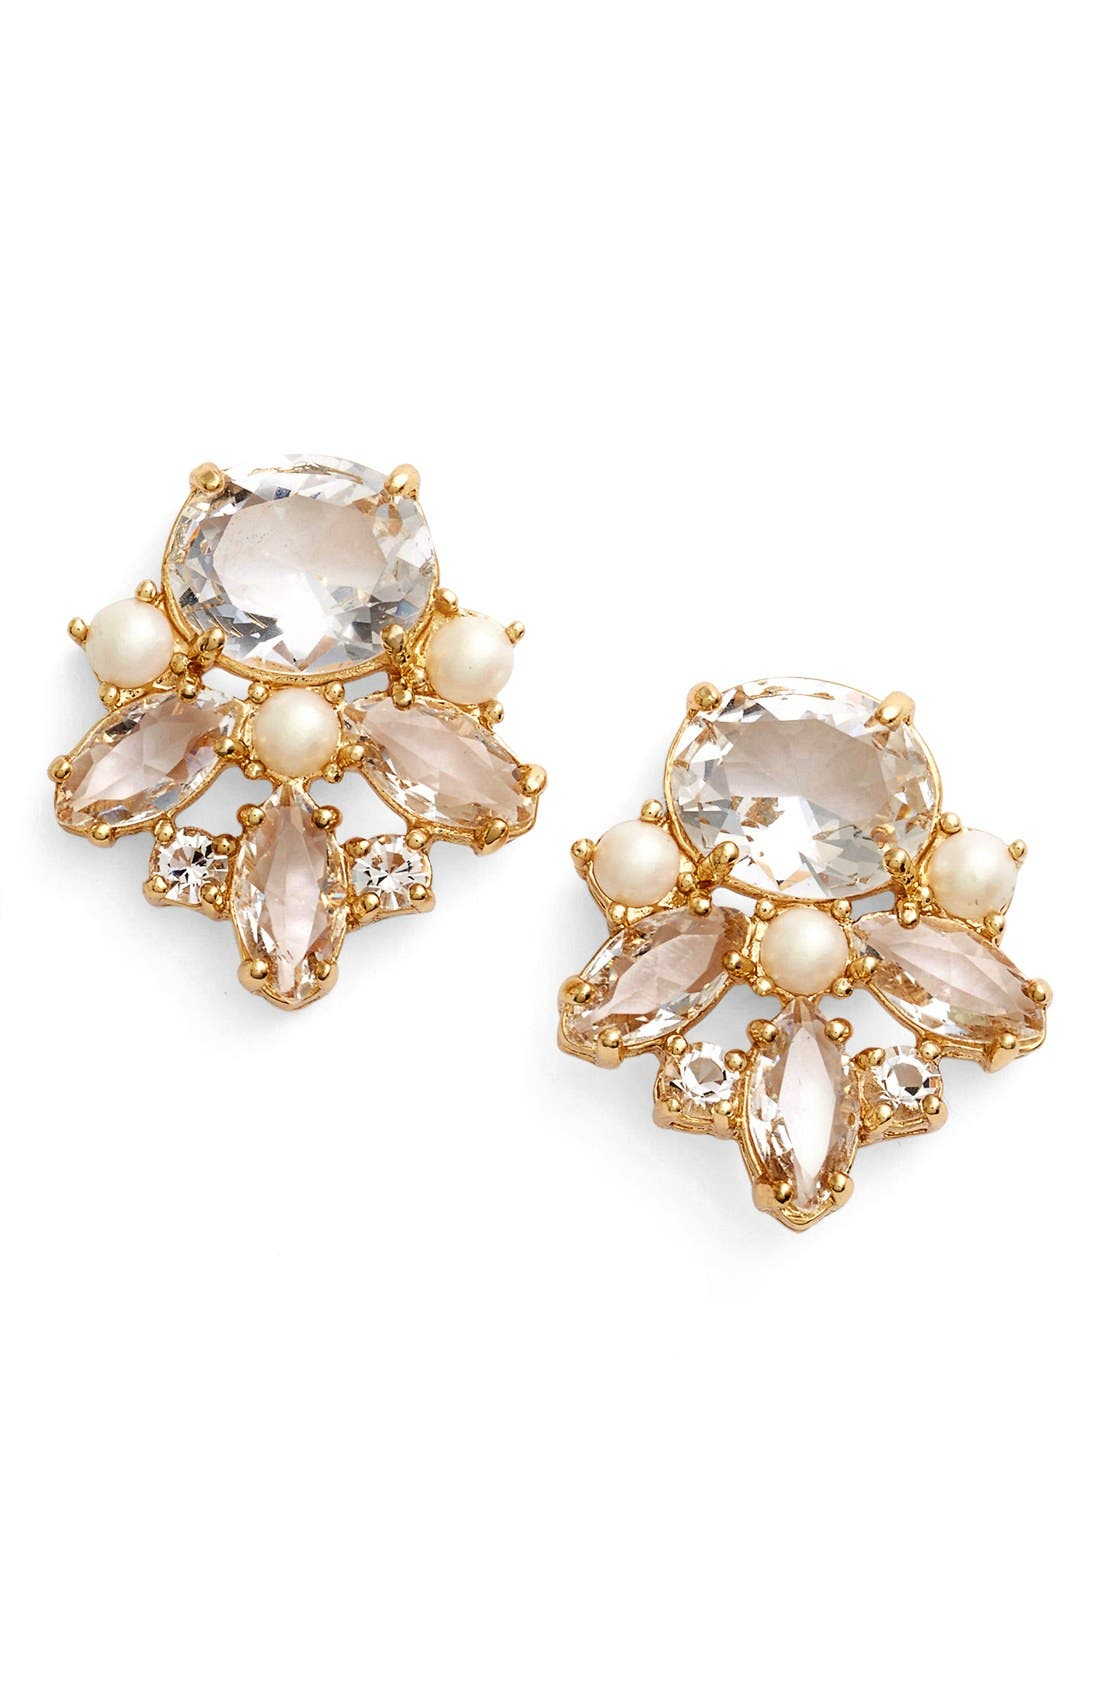 Alternate Image 1 Selected - kate spade new york 'chantilly' cluster stud earrings